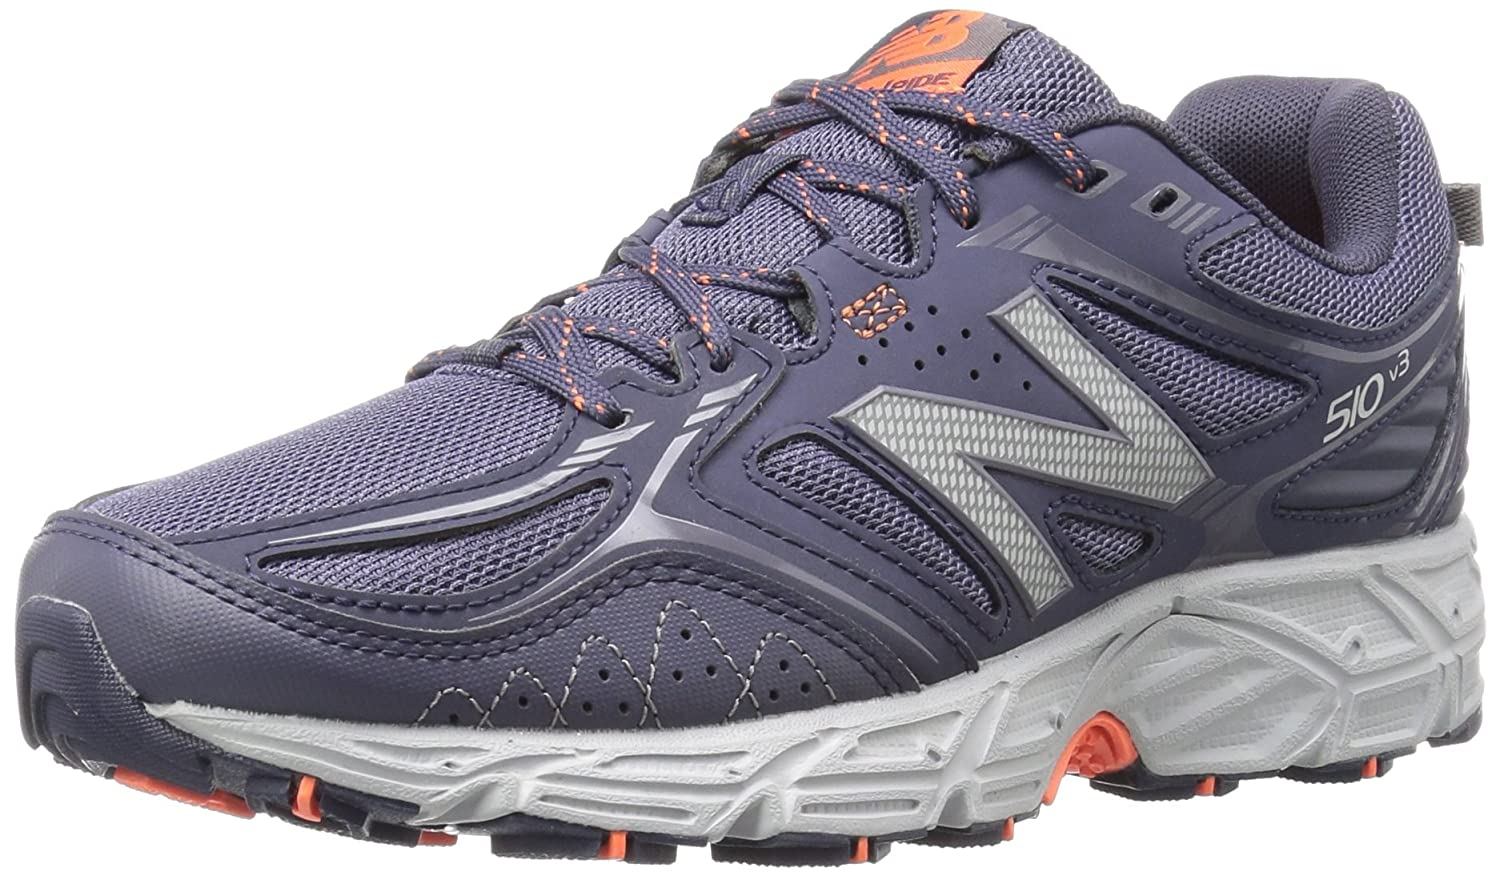 New Balance Women's WT510RS3 Trail Running Shoes B01CQVP0C8 9 B(M) US|Silver Mink